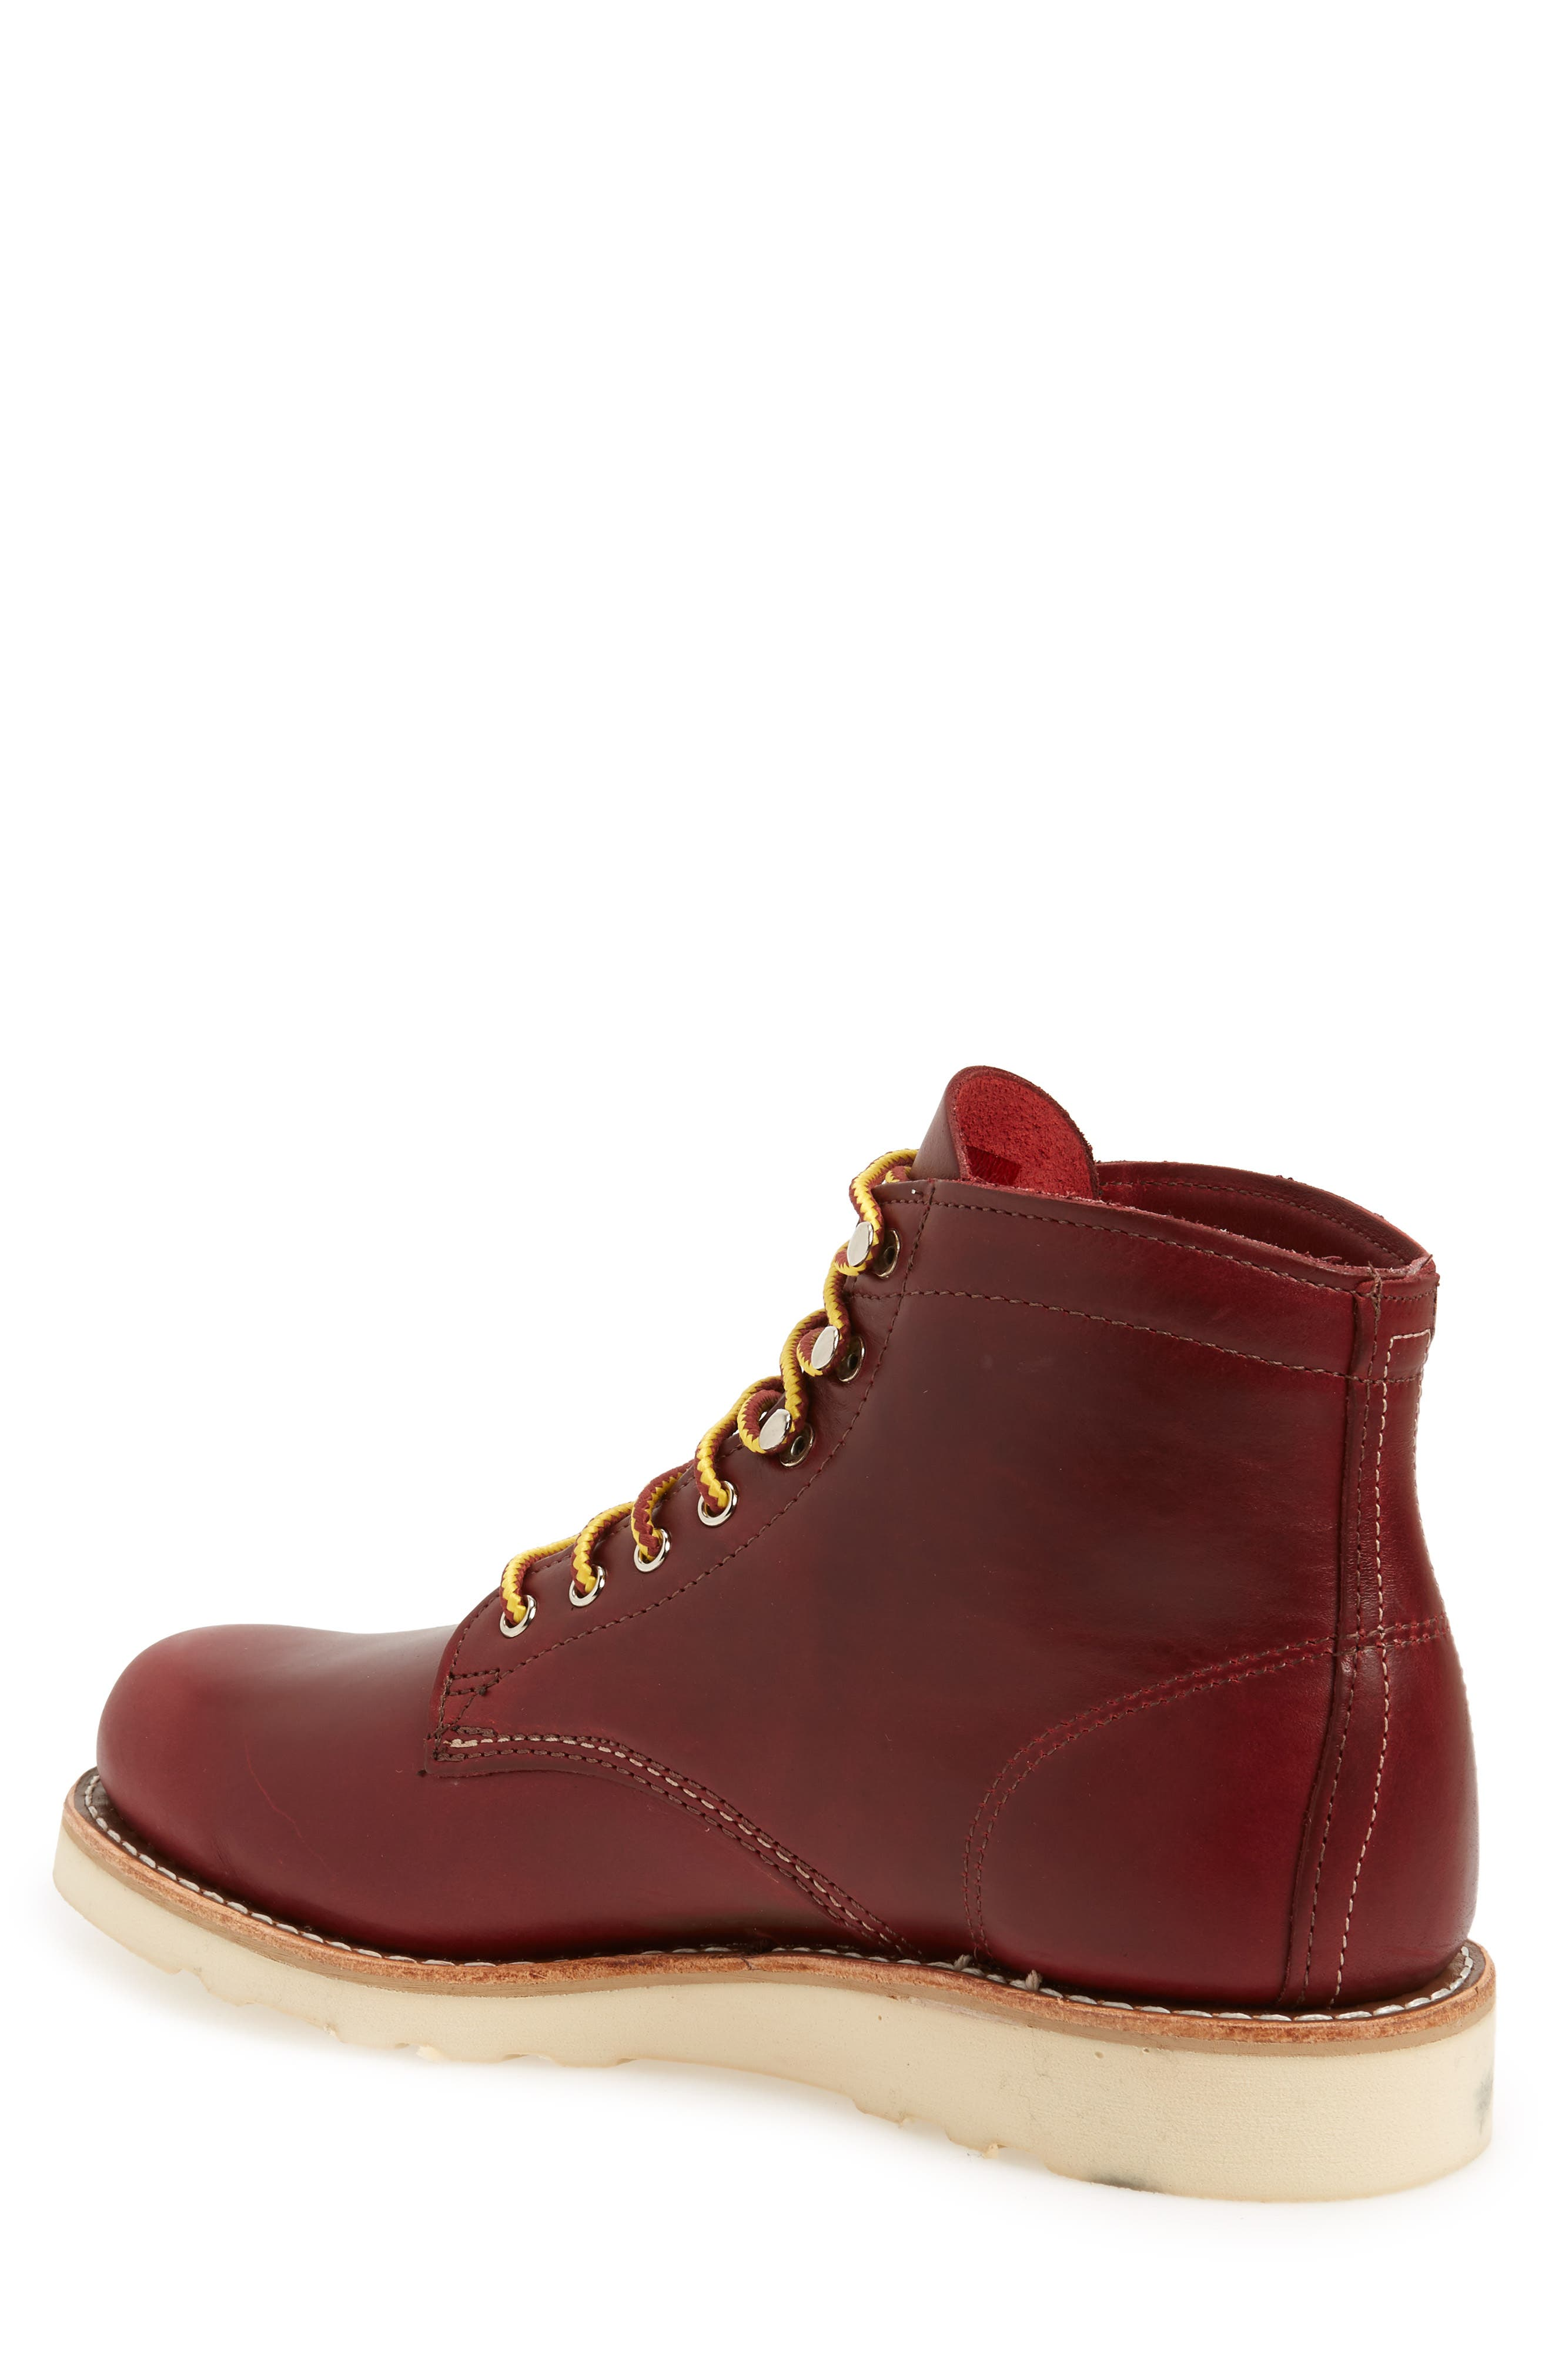 1000 Mile Wedge Boot,                             Alternate thumbnail 2, color,                             RED